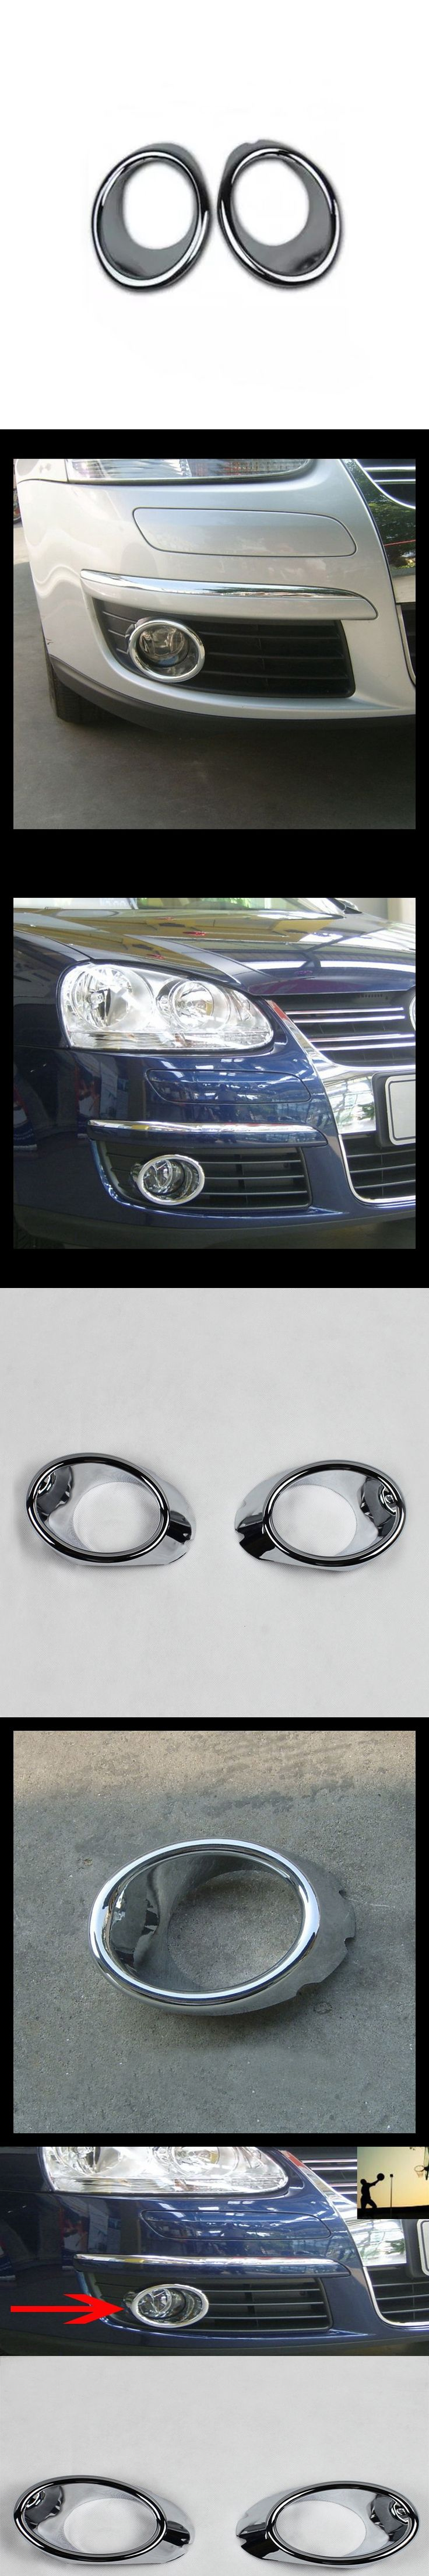 CHROME front rear fog lamps COVER TRIM For VW Vento Bora Volkswagen  Jetta MK5 A5 2005 2006 2007 2008 2009 2010 2011 car styling